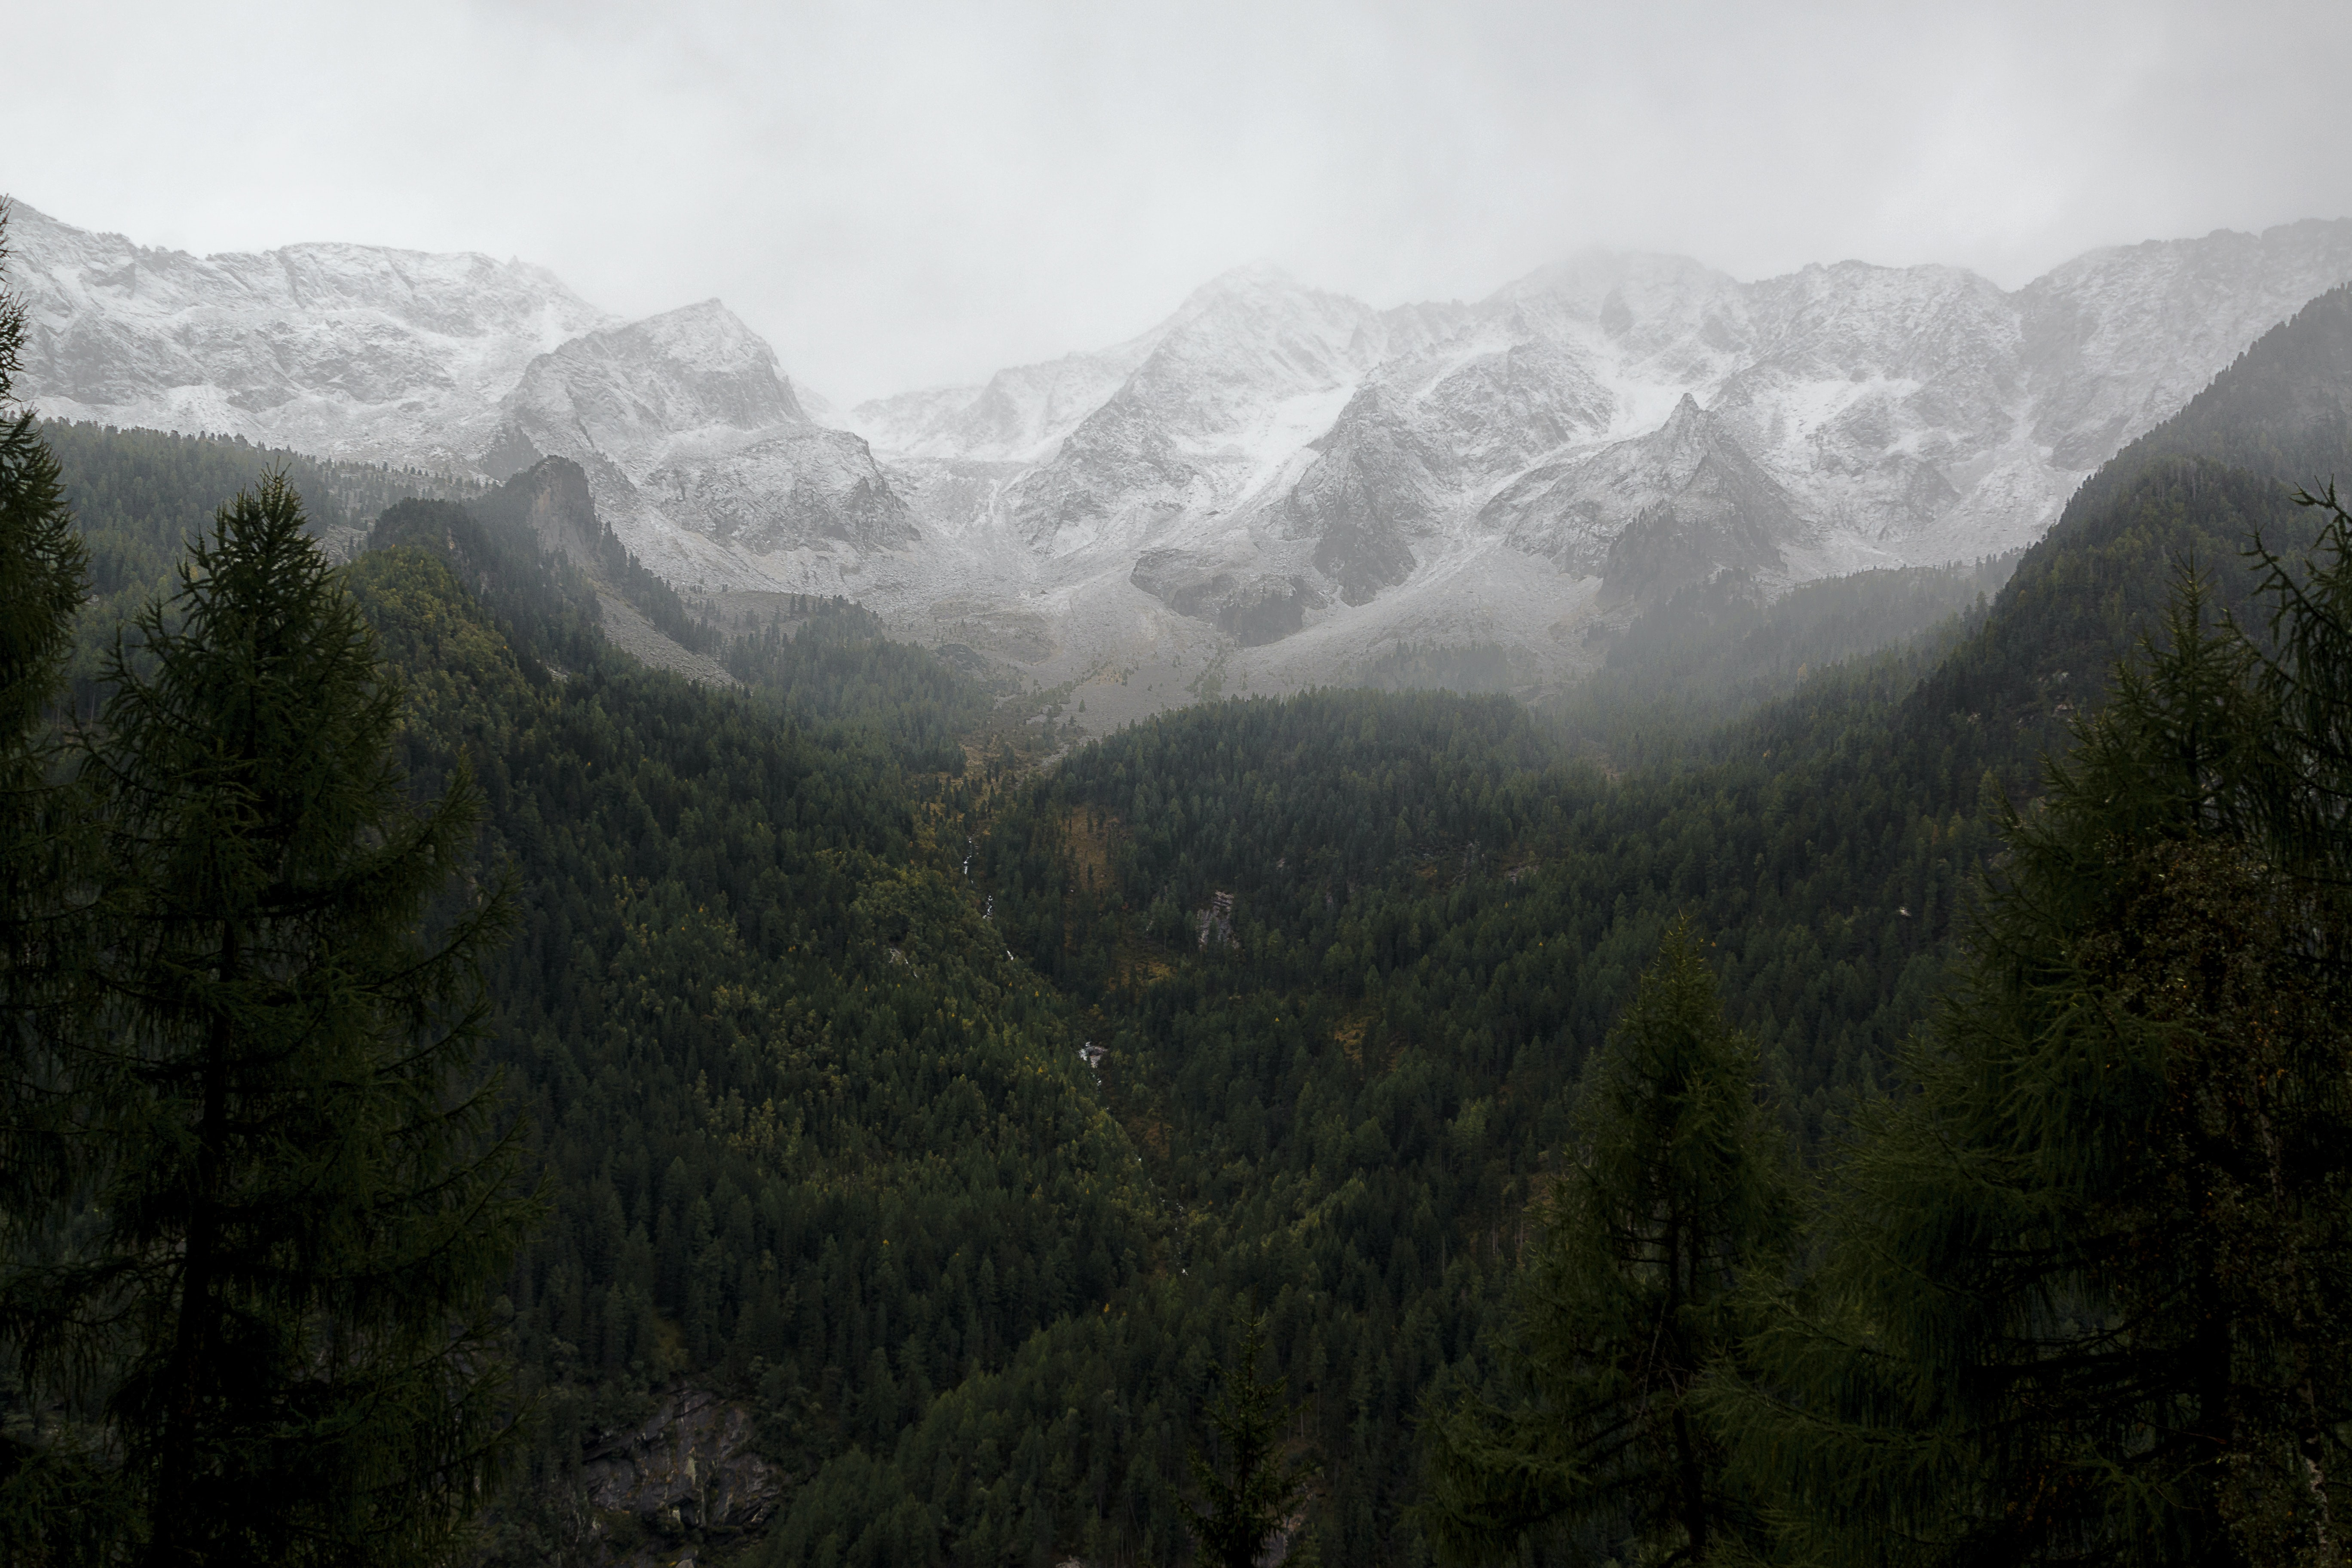 photo of green pine trees near snow capped mountain